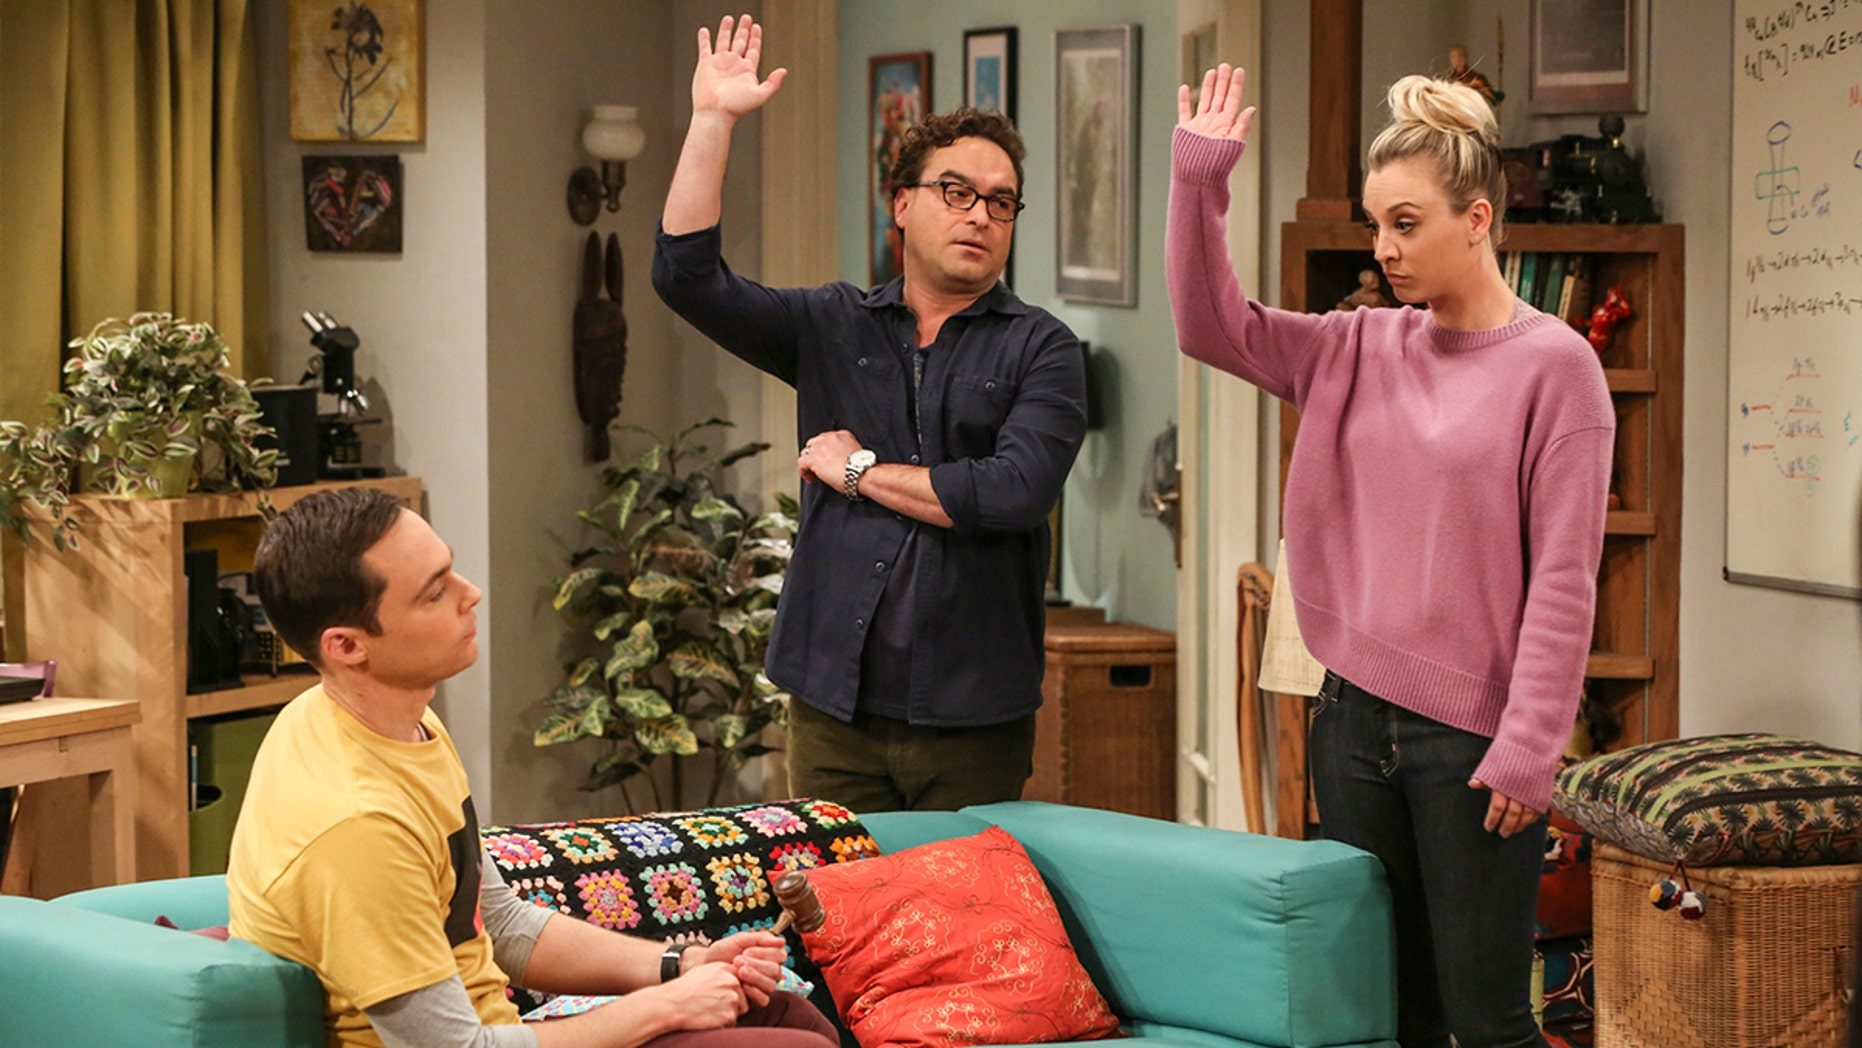 """The Tenant Disassociation"" - Pictured: Sheldon Cooper (Jim Parsons), Leonard Hofstadter (Johnny Galecki) and Penny (Kaley Cuoco). When Leonard learns Sheldon is the president of the tenants association, he decides to run against him. Also, Bernadette encourages Wolowitz and Koothrappali to find the owner of a drone after they find it in the backyard, on THE BIG BANG THEORY, Thursday, April 5 (8:00-8:31 PM, ET/PT) on the CBS Television Network. Photo: Michael Yarish/Warner Bros. Entertainment Inc. © 2018 WBEI. All rights reserved."